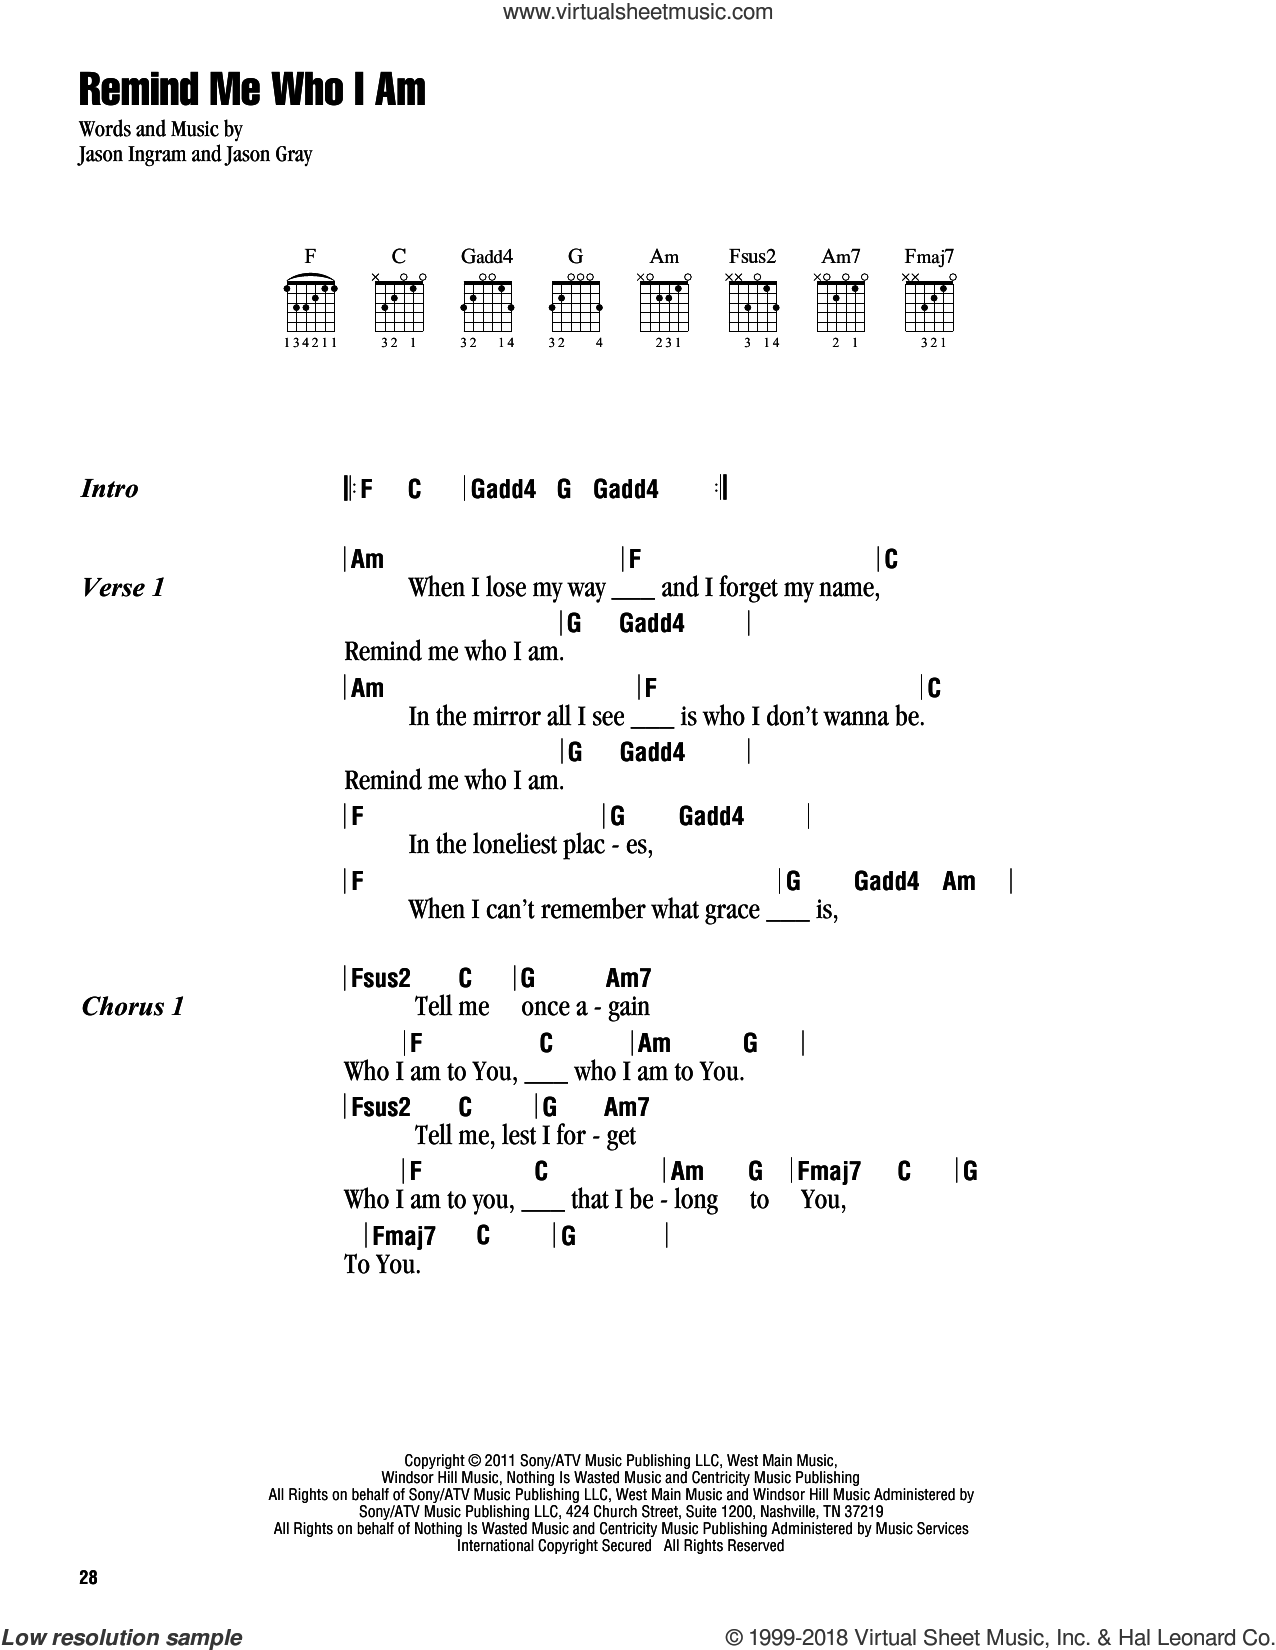 Remind Me Who I Am sheet music for guitar (chords) by Jason Gray and Jason Ingram, intermediate skill level